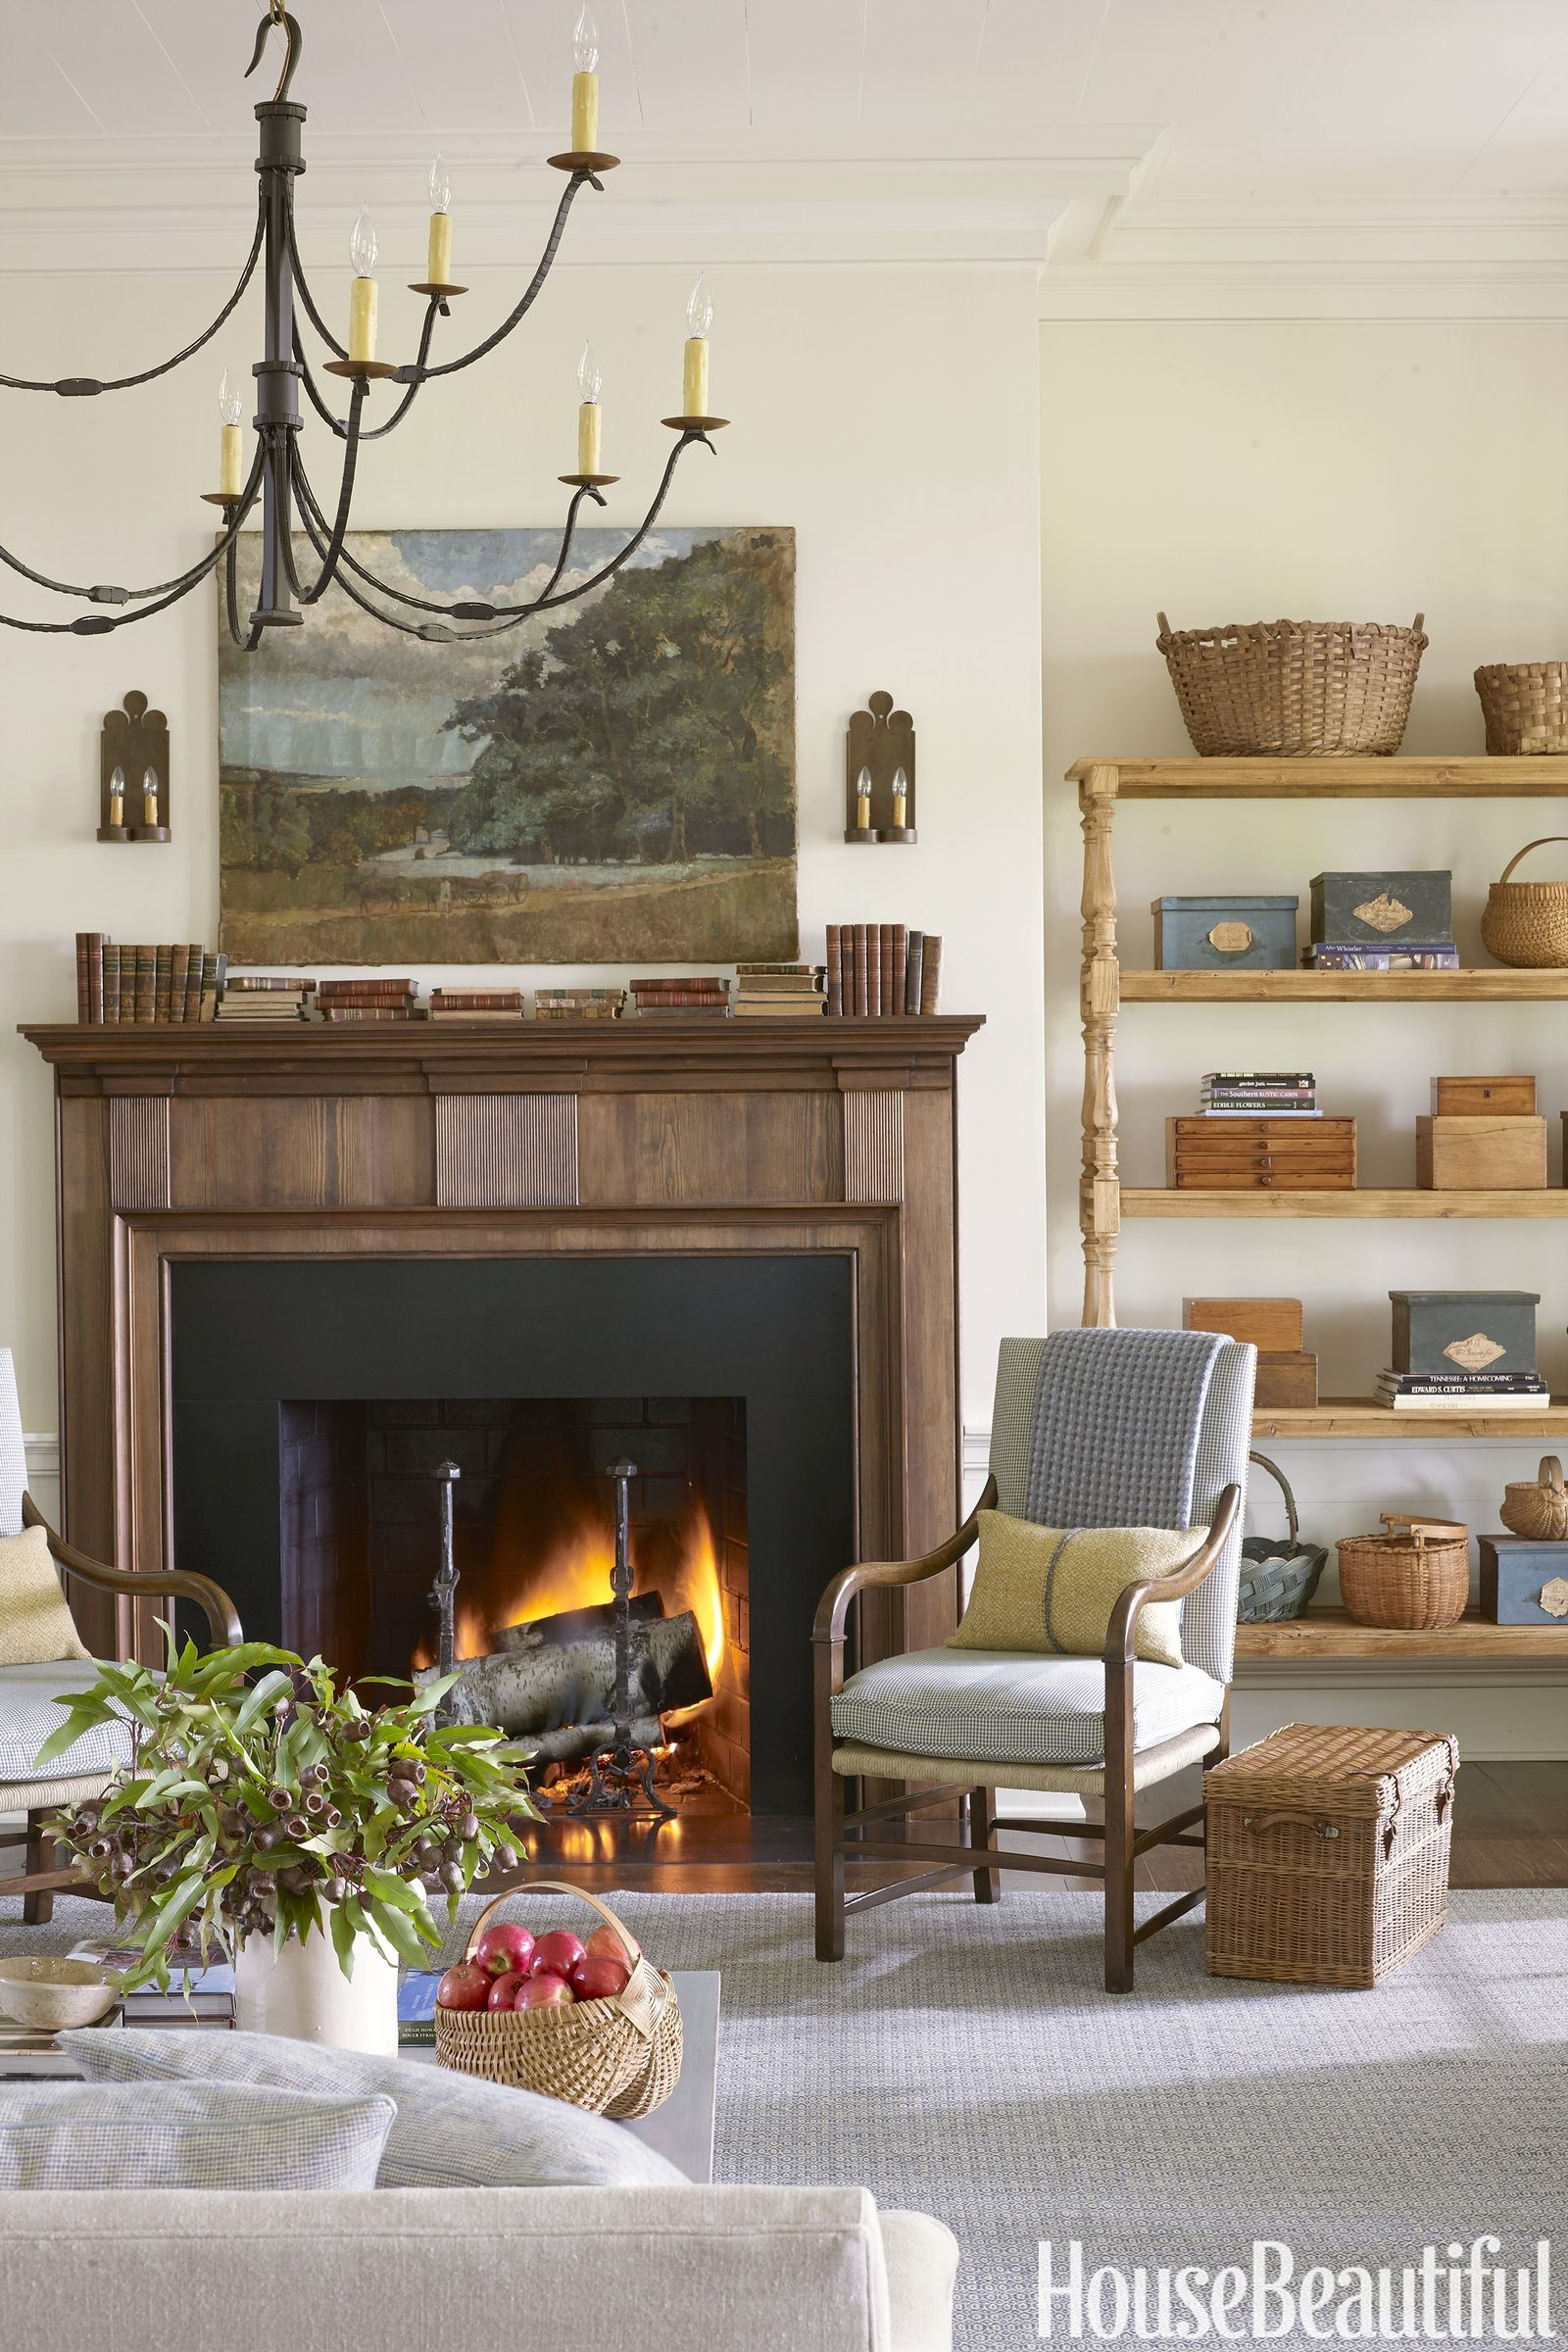 Living Room Designer Endearing This Country Home Is Singlehandedly Making Baskets Cool Again Design Decoration